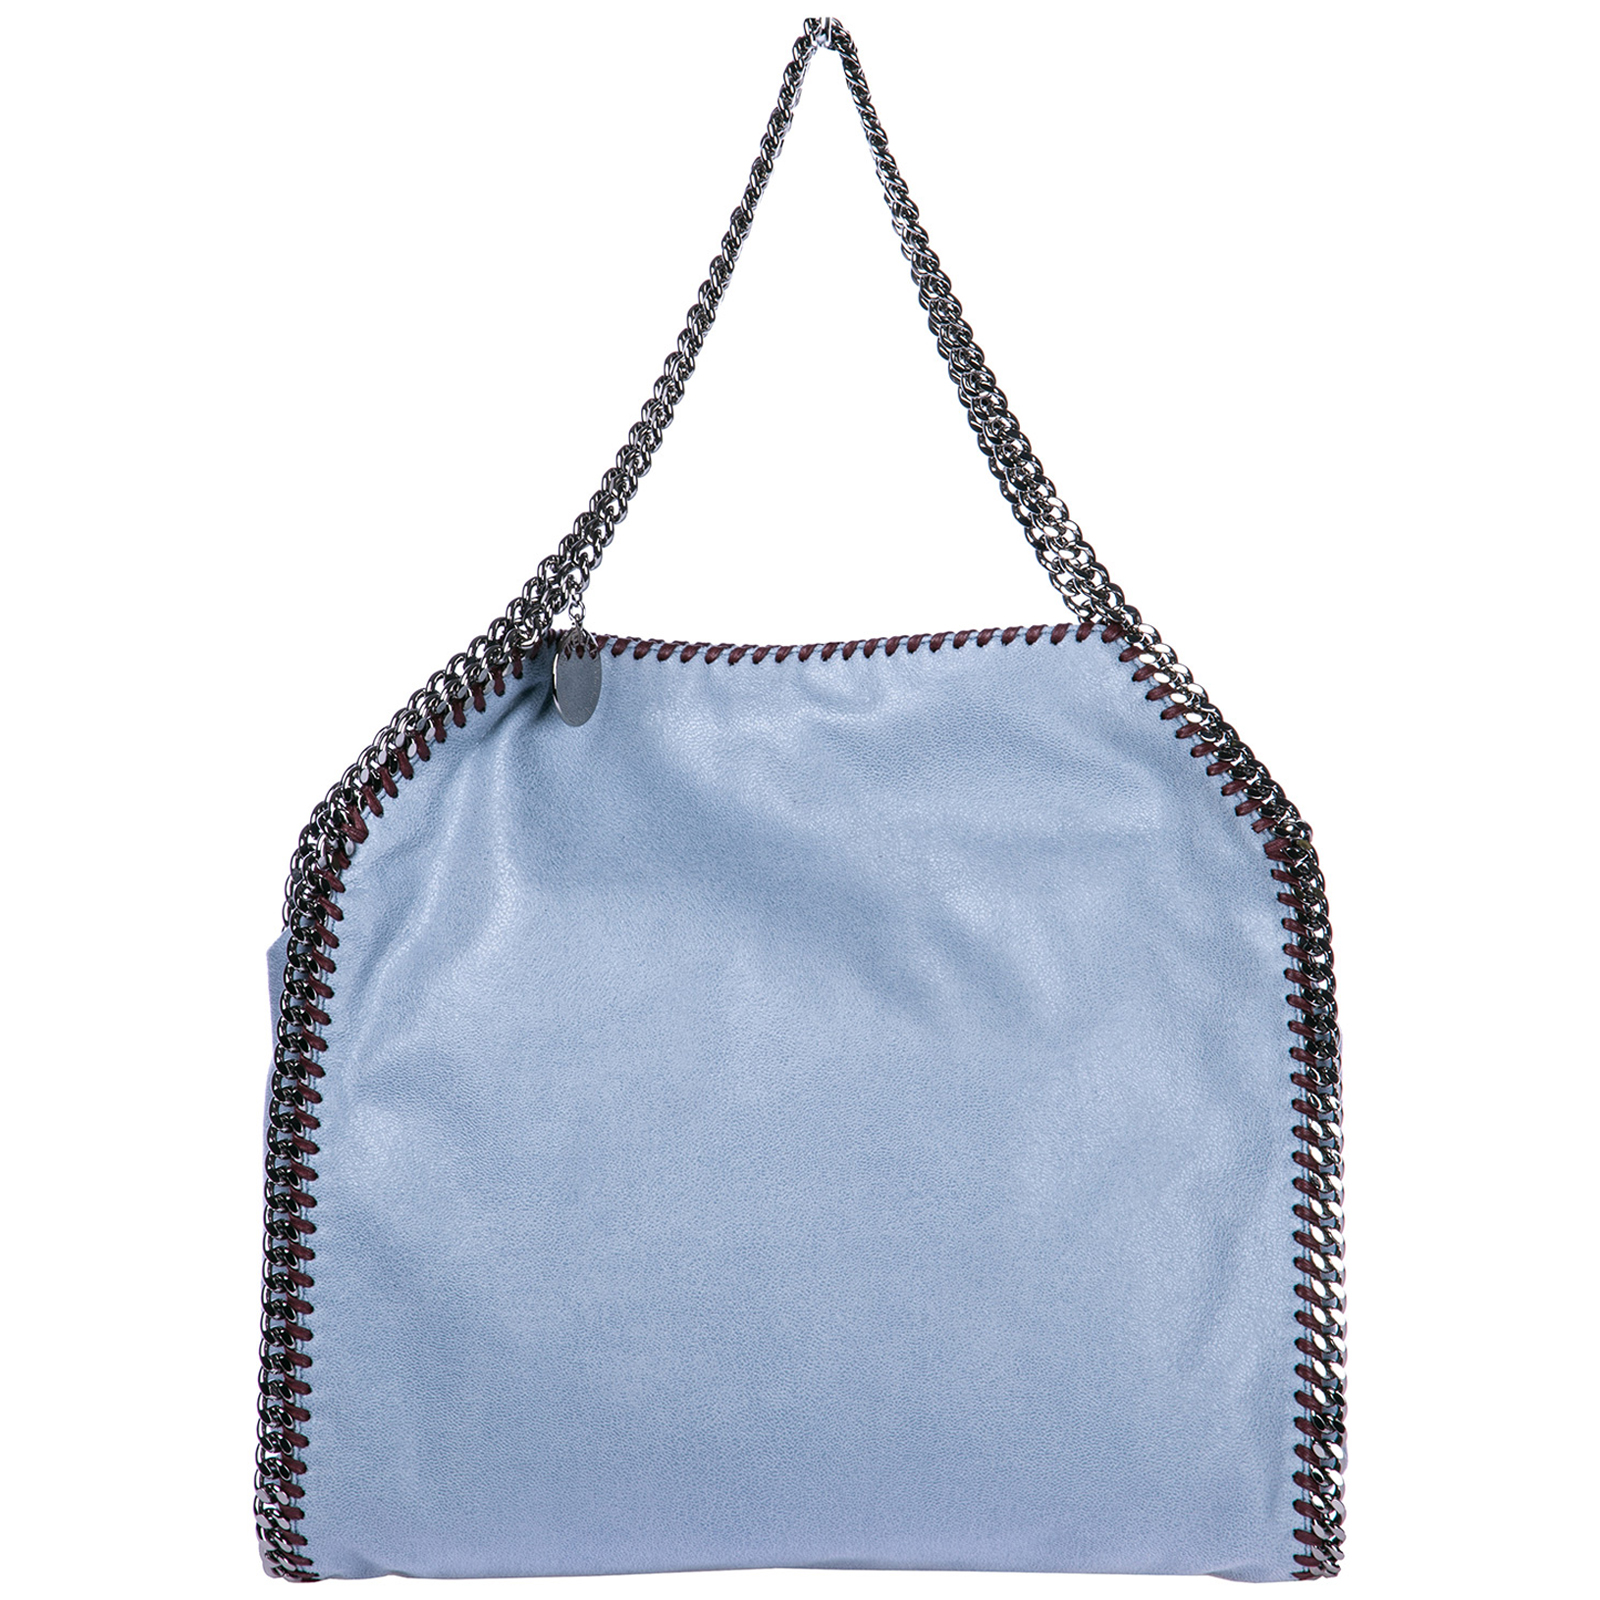 cbd6bee3b2 Stella Mccartney Women S Shoulder Bag Falabella Small Tote Shaggy Deer In  Blue